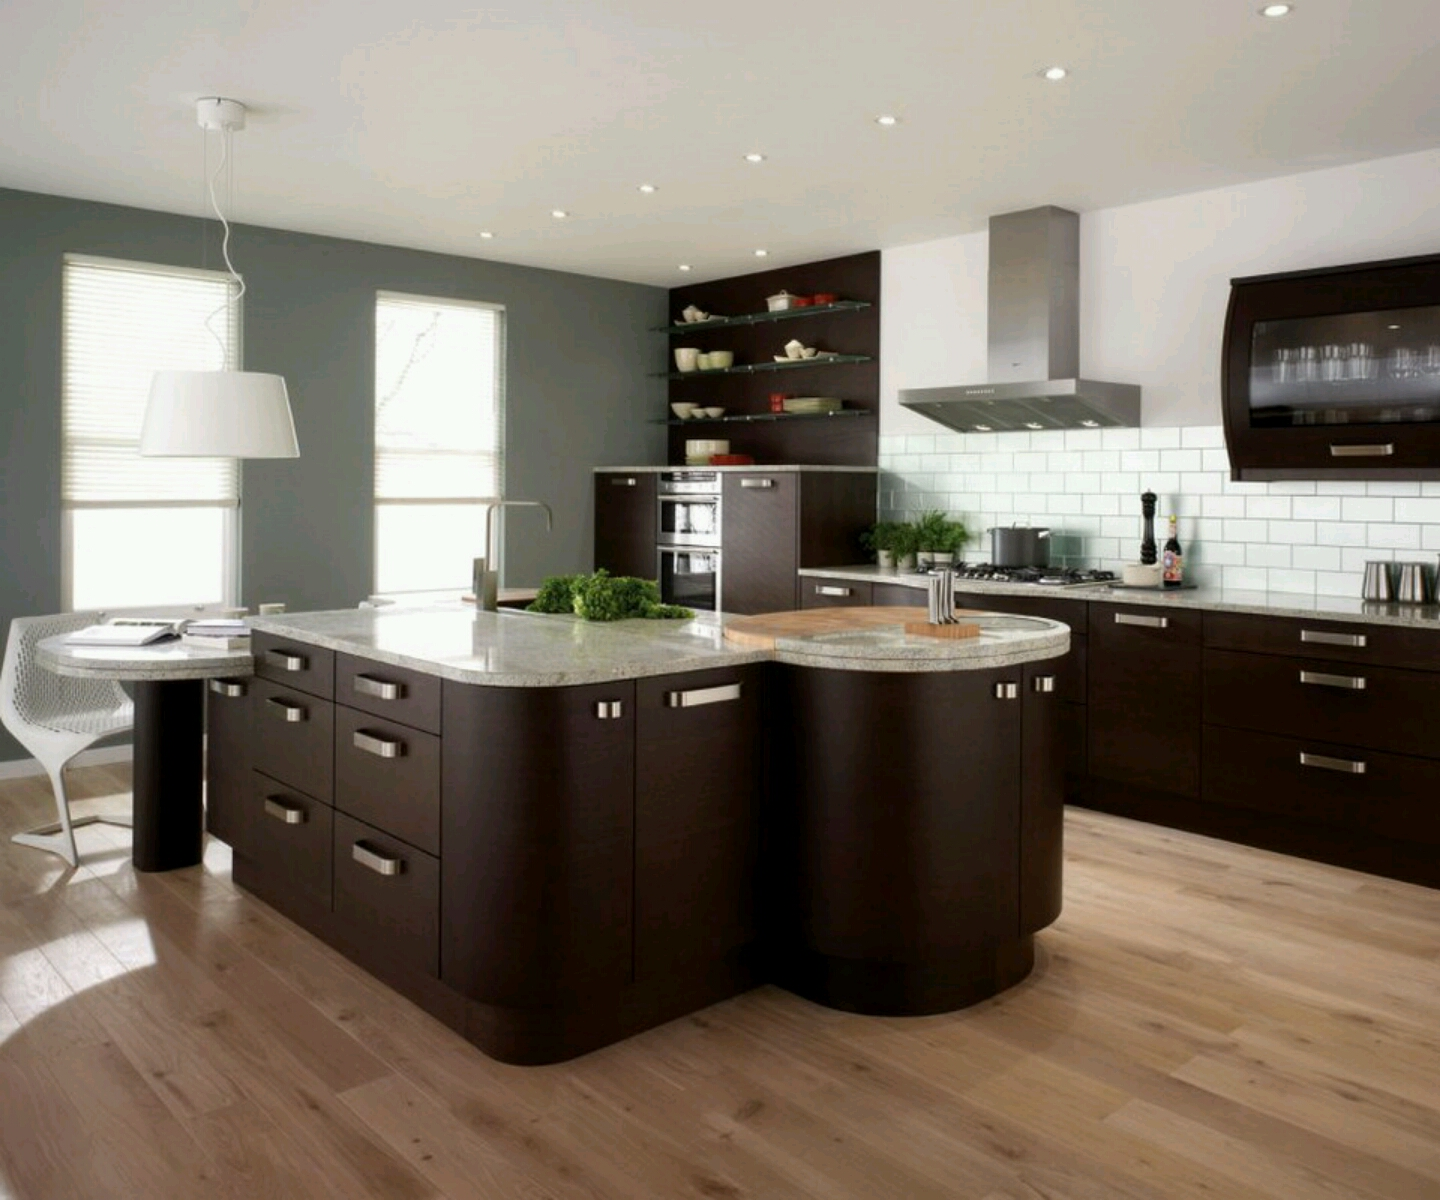 Modern home kitchen cabinet designs ideas new home designs Kitchen design for modern house